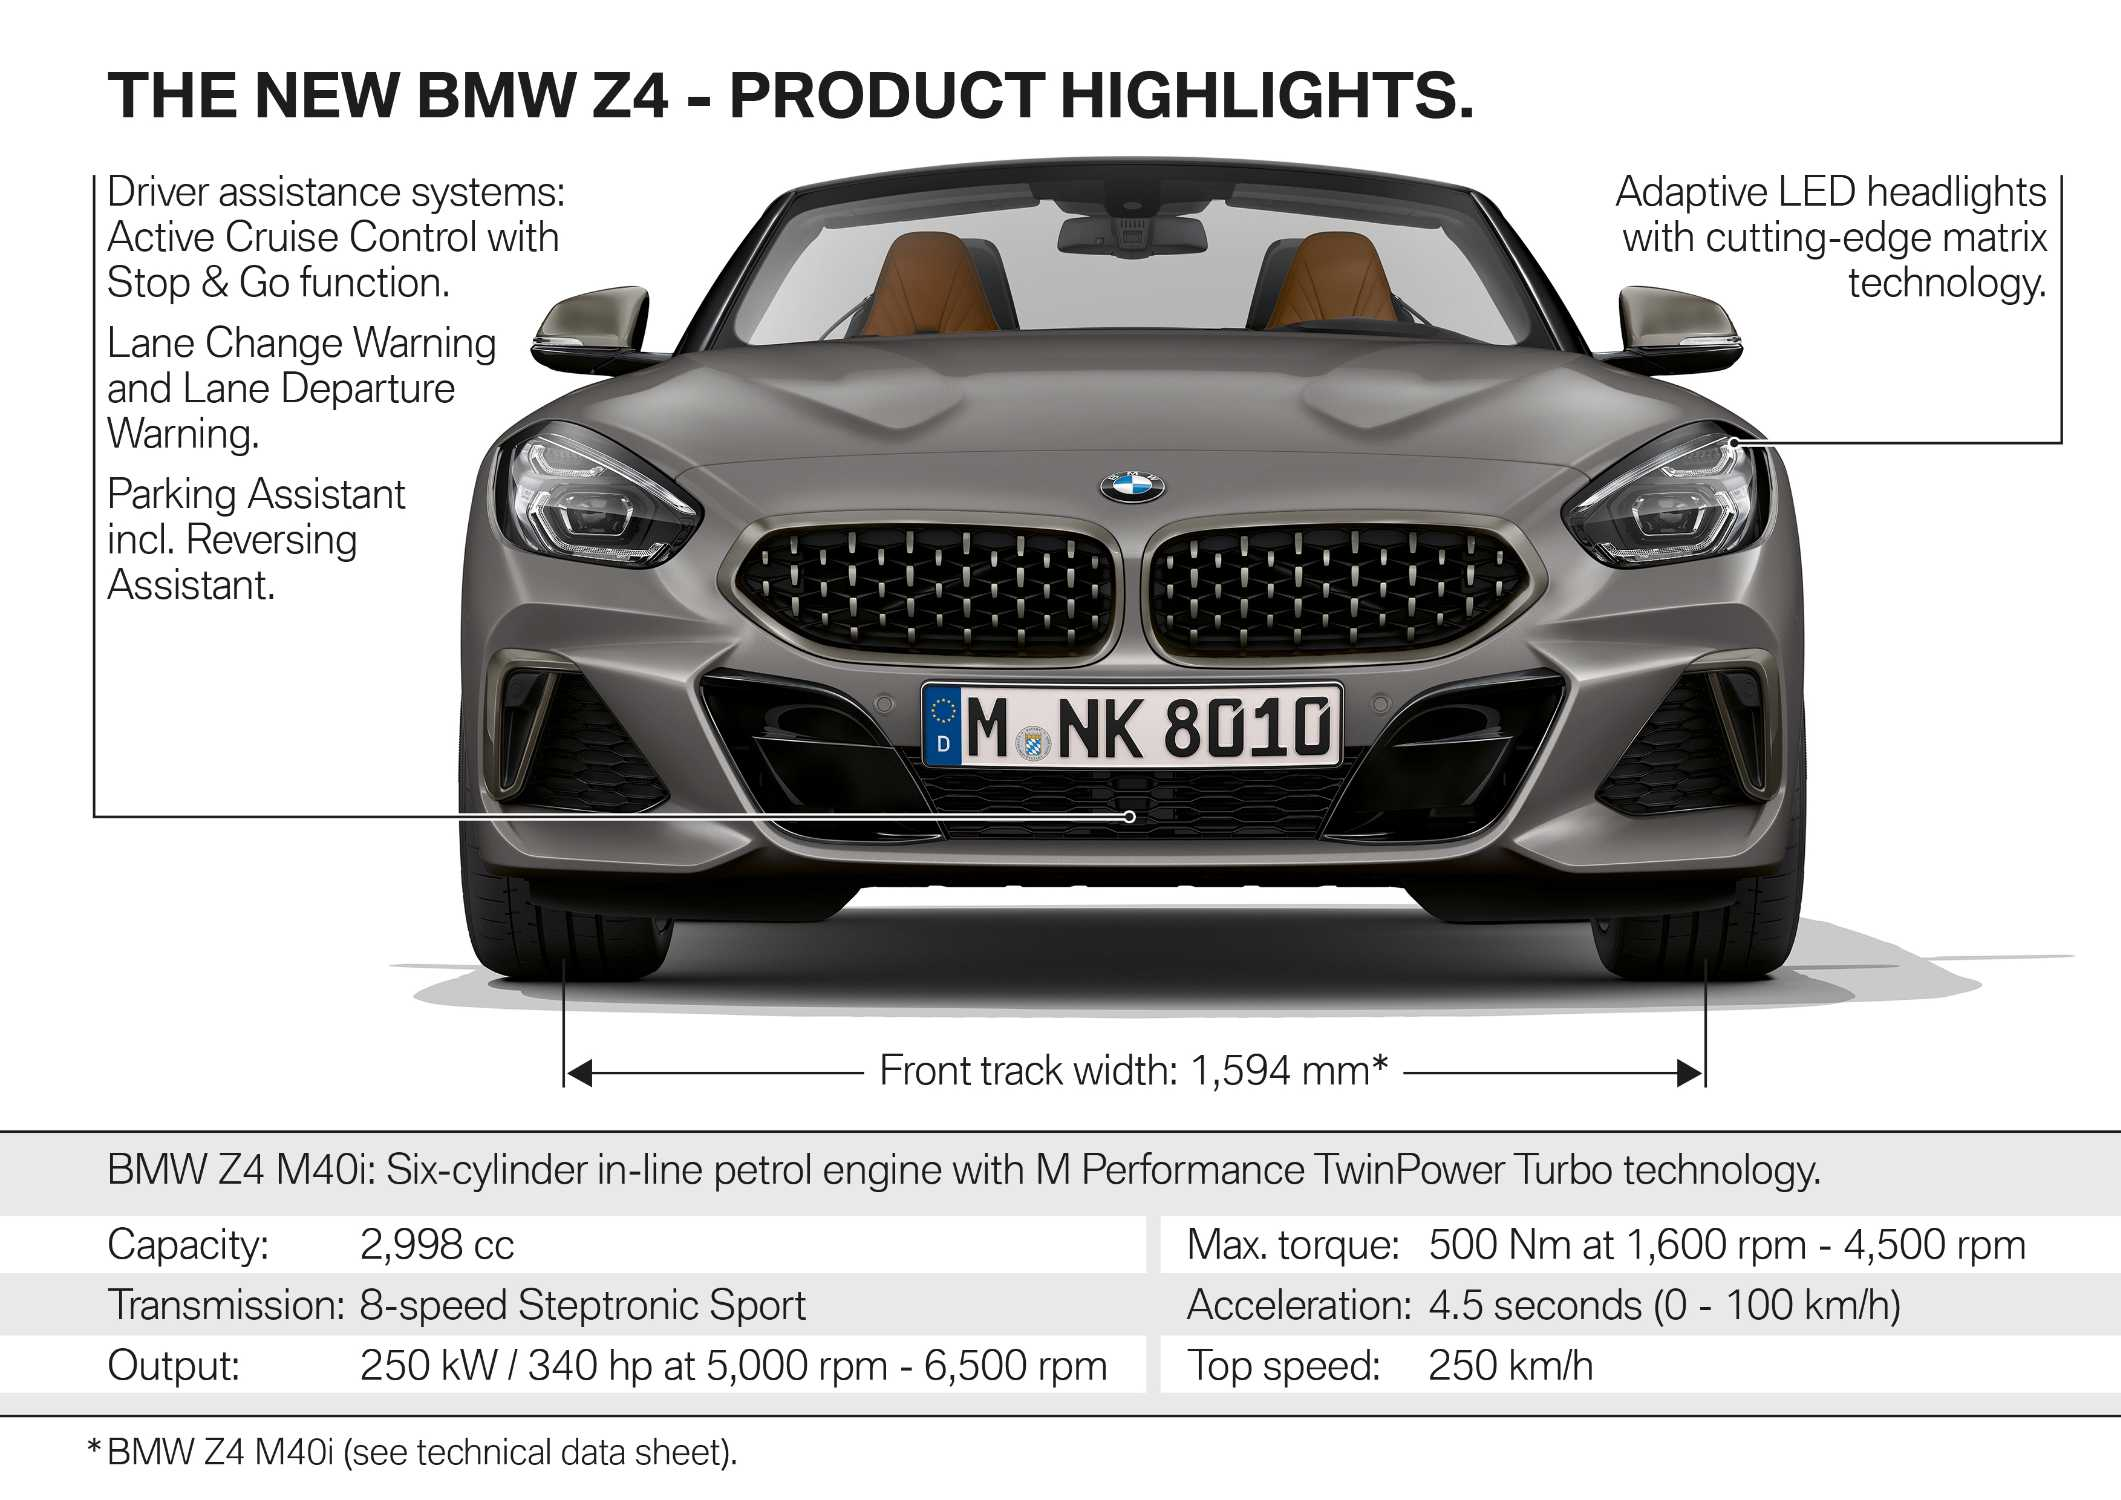 The new BMW Z4 - Product Highlights (09/2018).